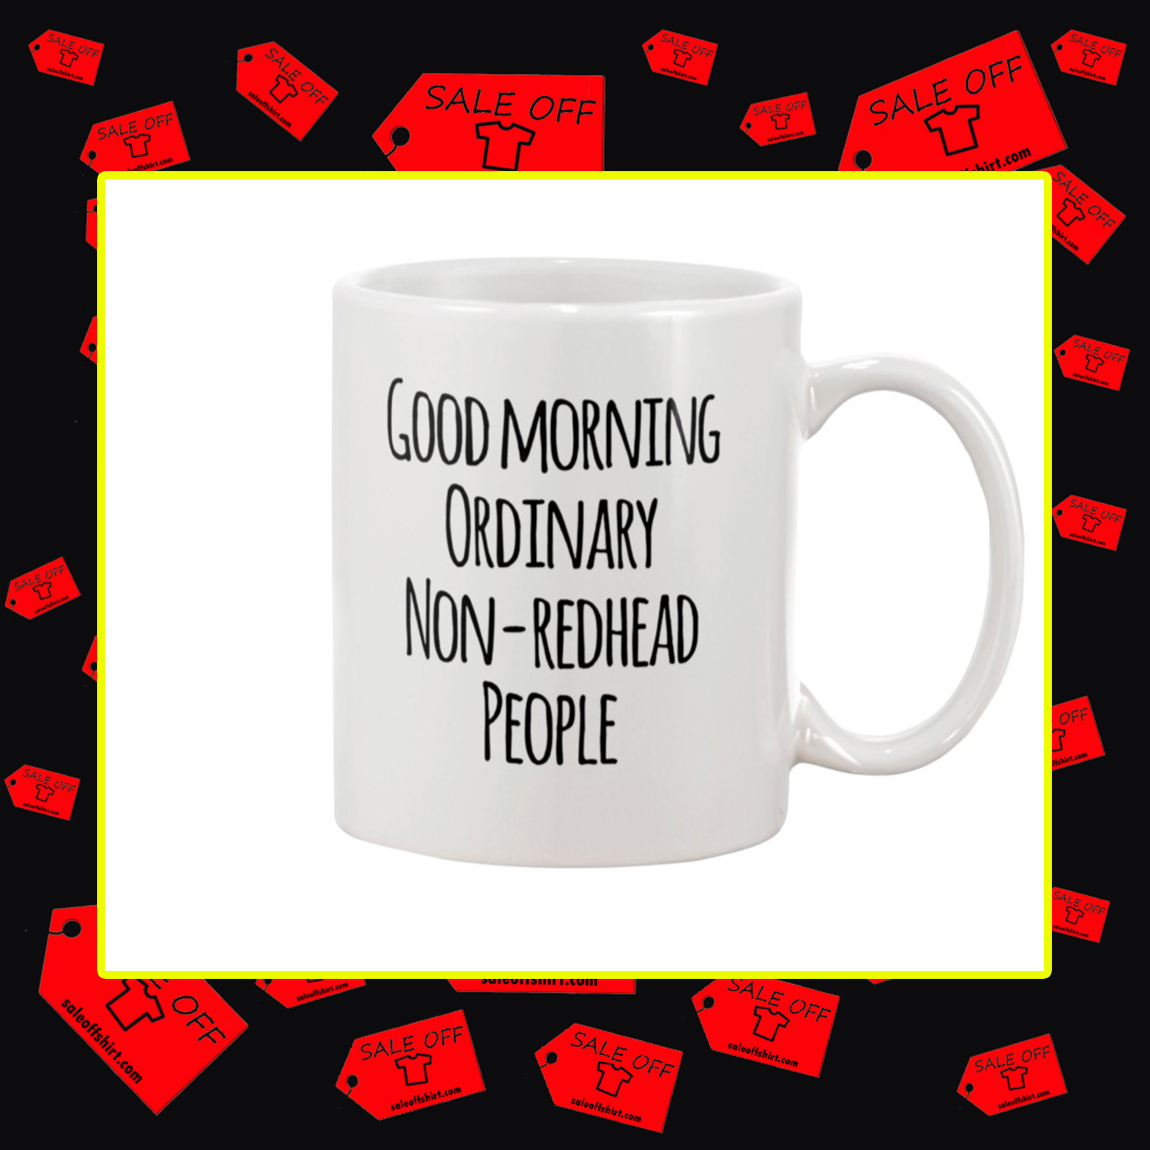 Good Morning Ordinary Non-Redhead People Mug